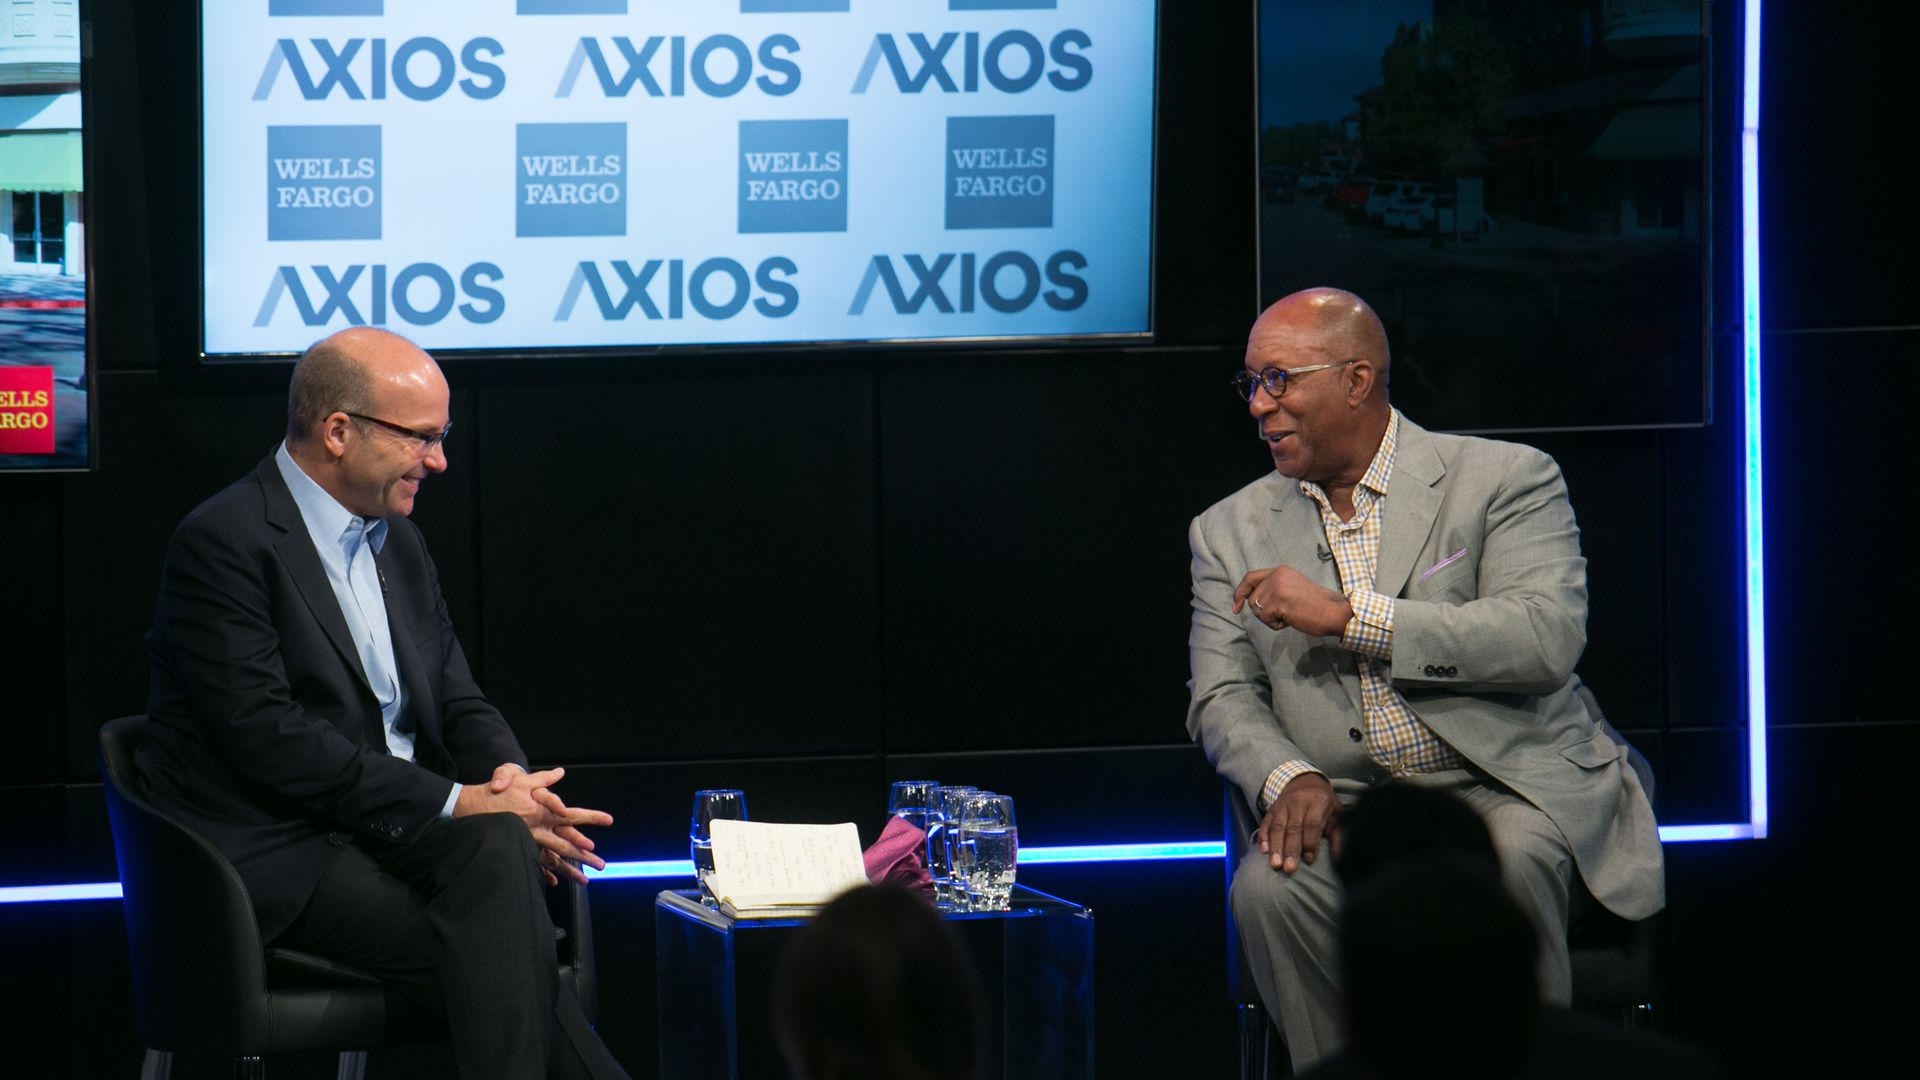 Ambassador Ron Kirk speaking with Mike Allen on the Axios stage